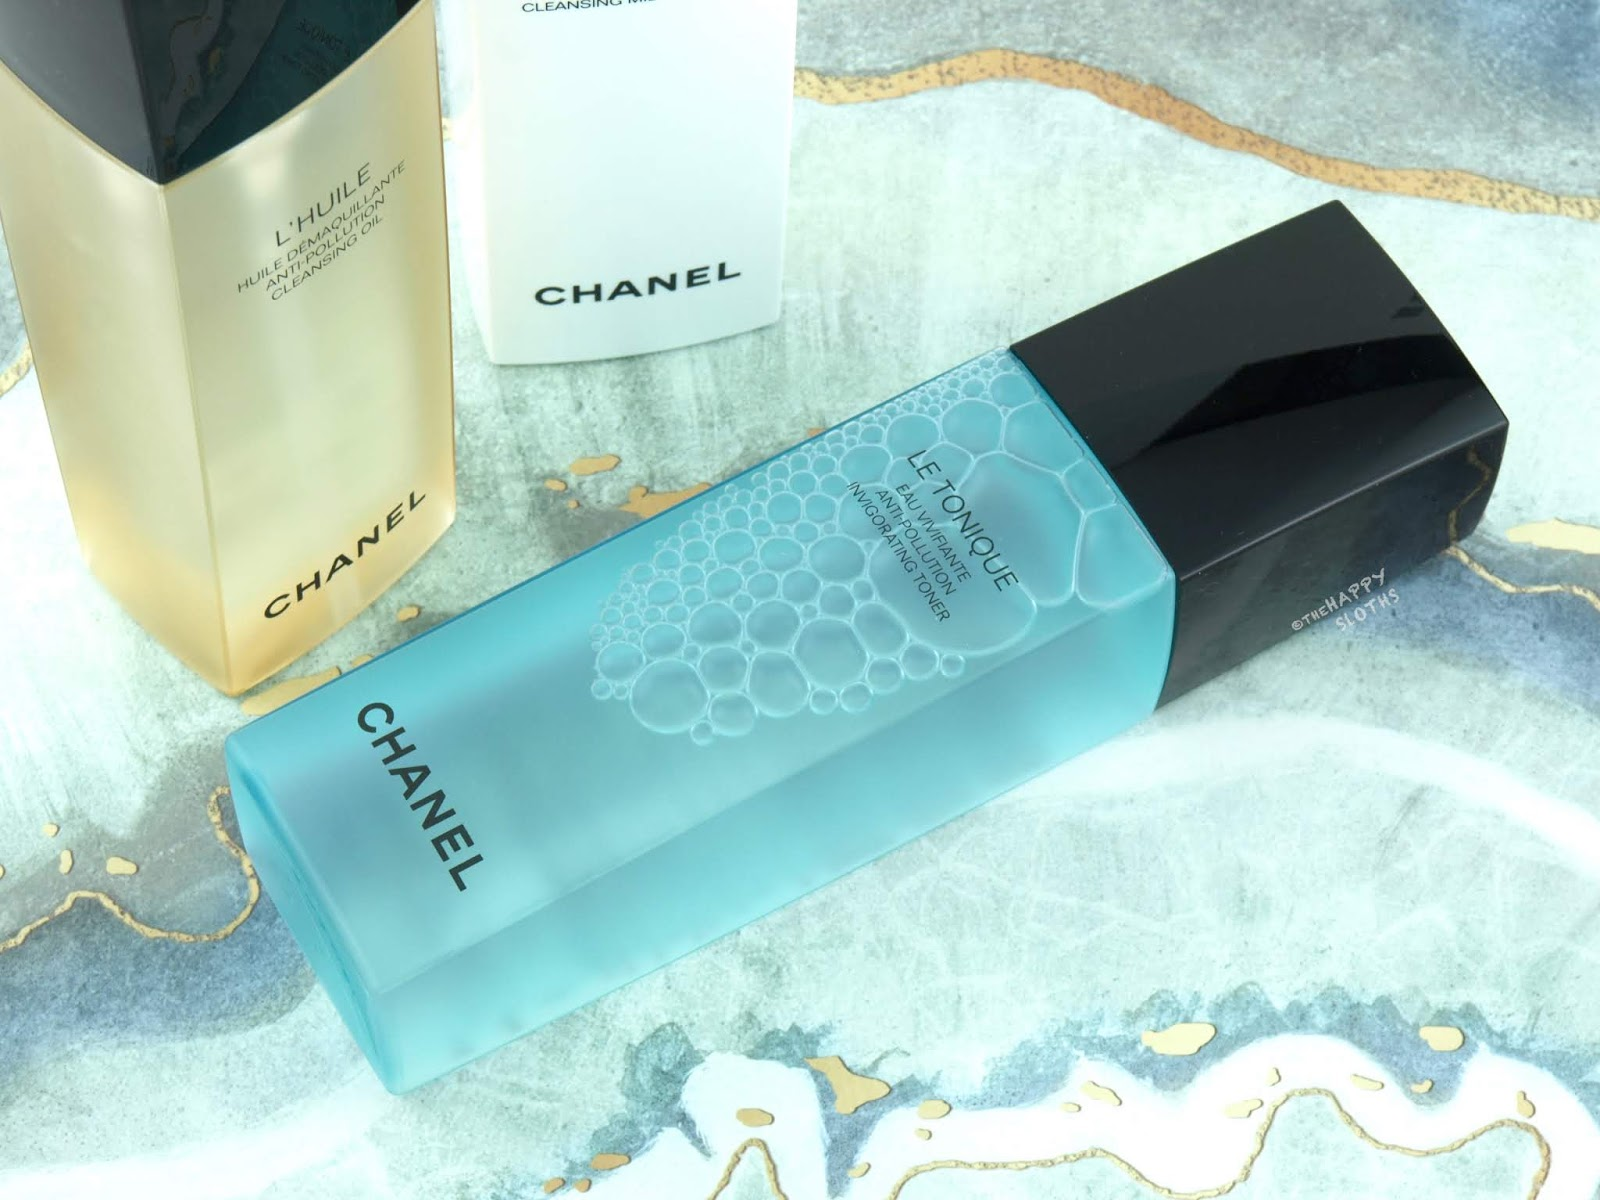 Chanel | Le Tonique Anti-Pollution Invigorating Toner: Review